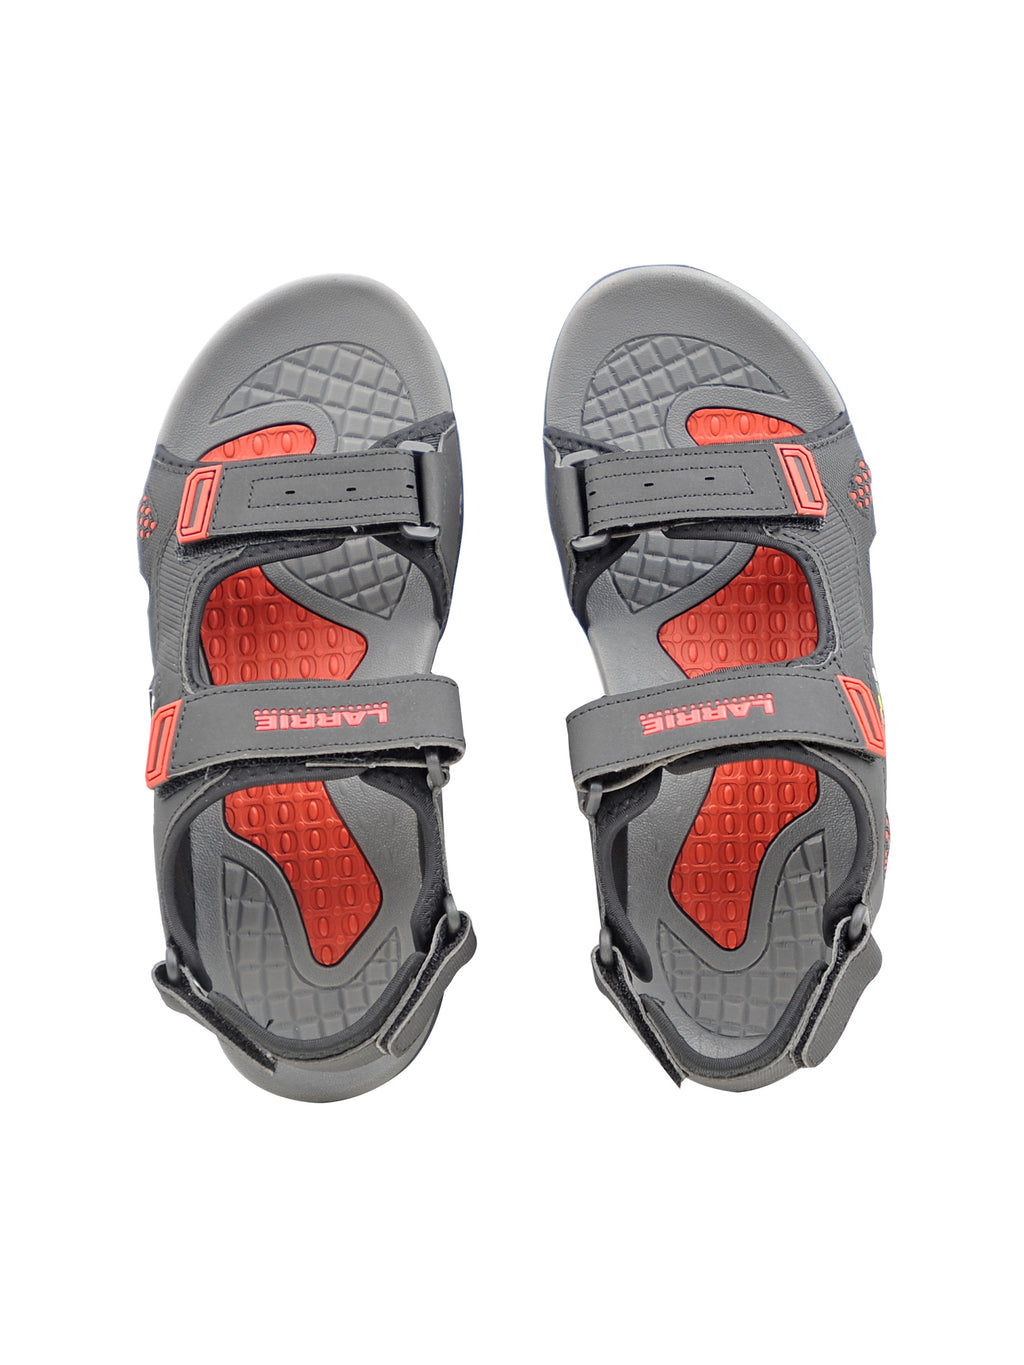 LARRIE Men Black Adjustable Strap Outdoor Sandals